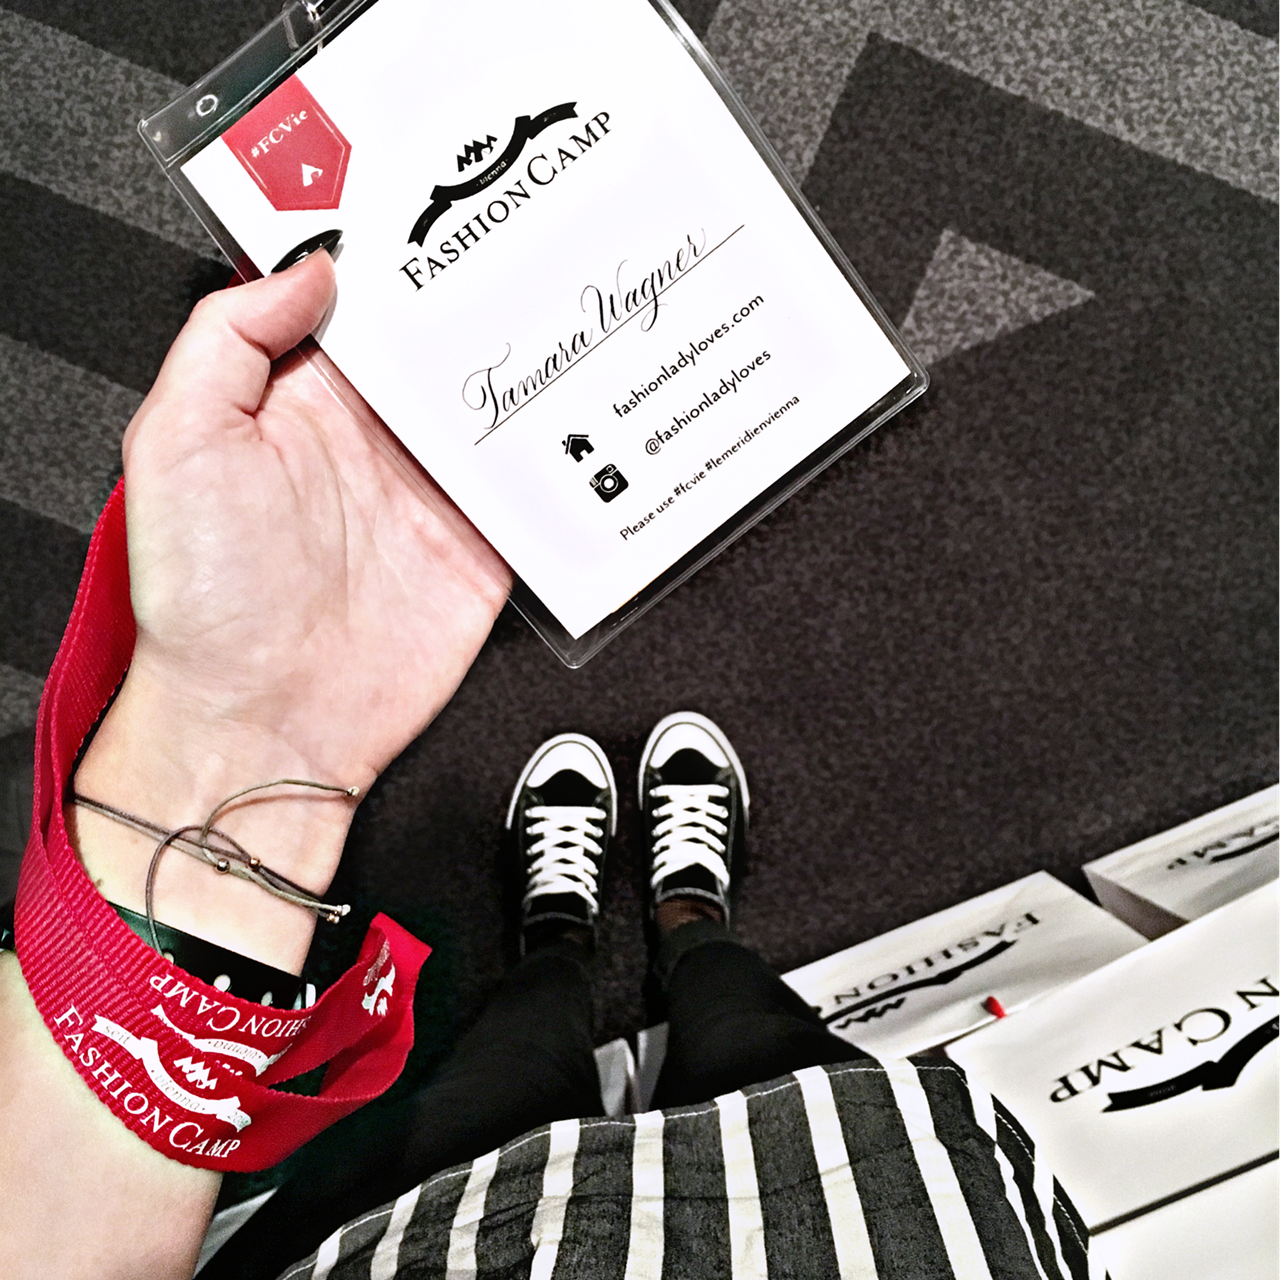 Fashion Camp Vienna - Vorträge und Workshops im Le Meridien Vienna - Fashionladyloves by Tamara Wagner - Fashion Blog - Mode Blog aus Graz